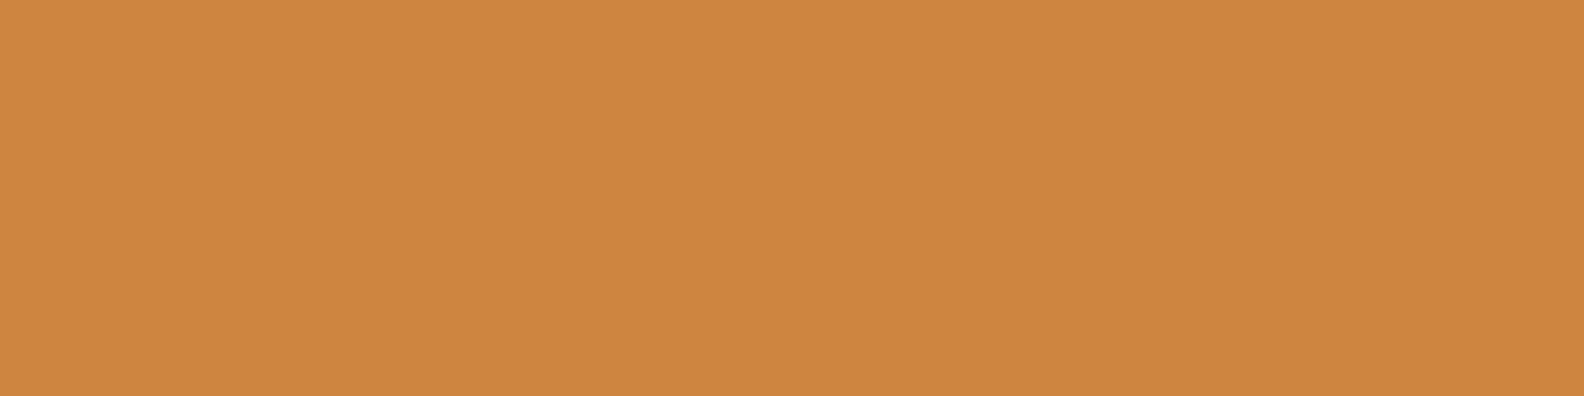 1584x396 Peru Solid Color Background